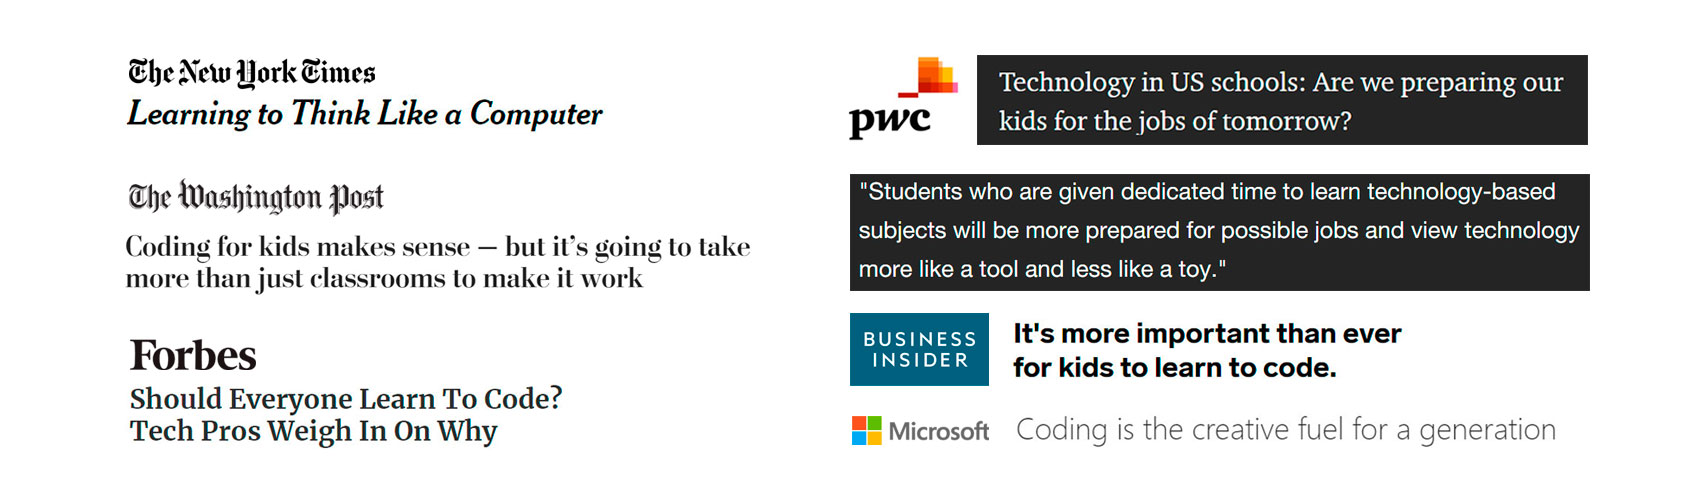 Headlines about the importance of learning to program for kids